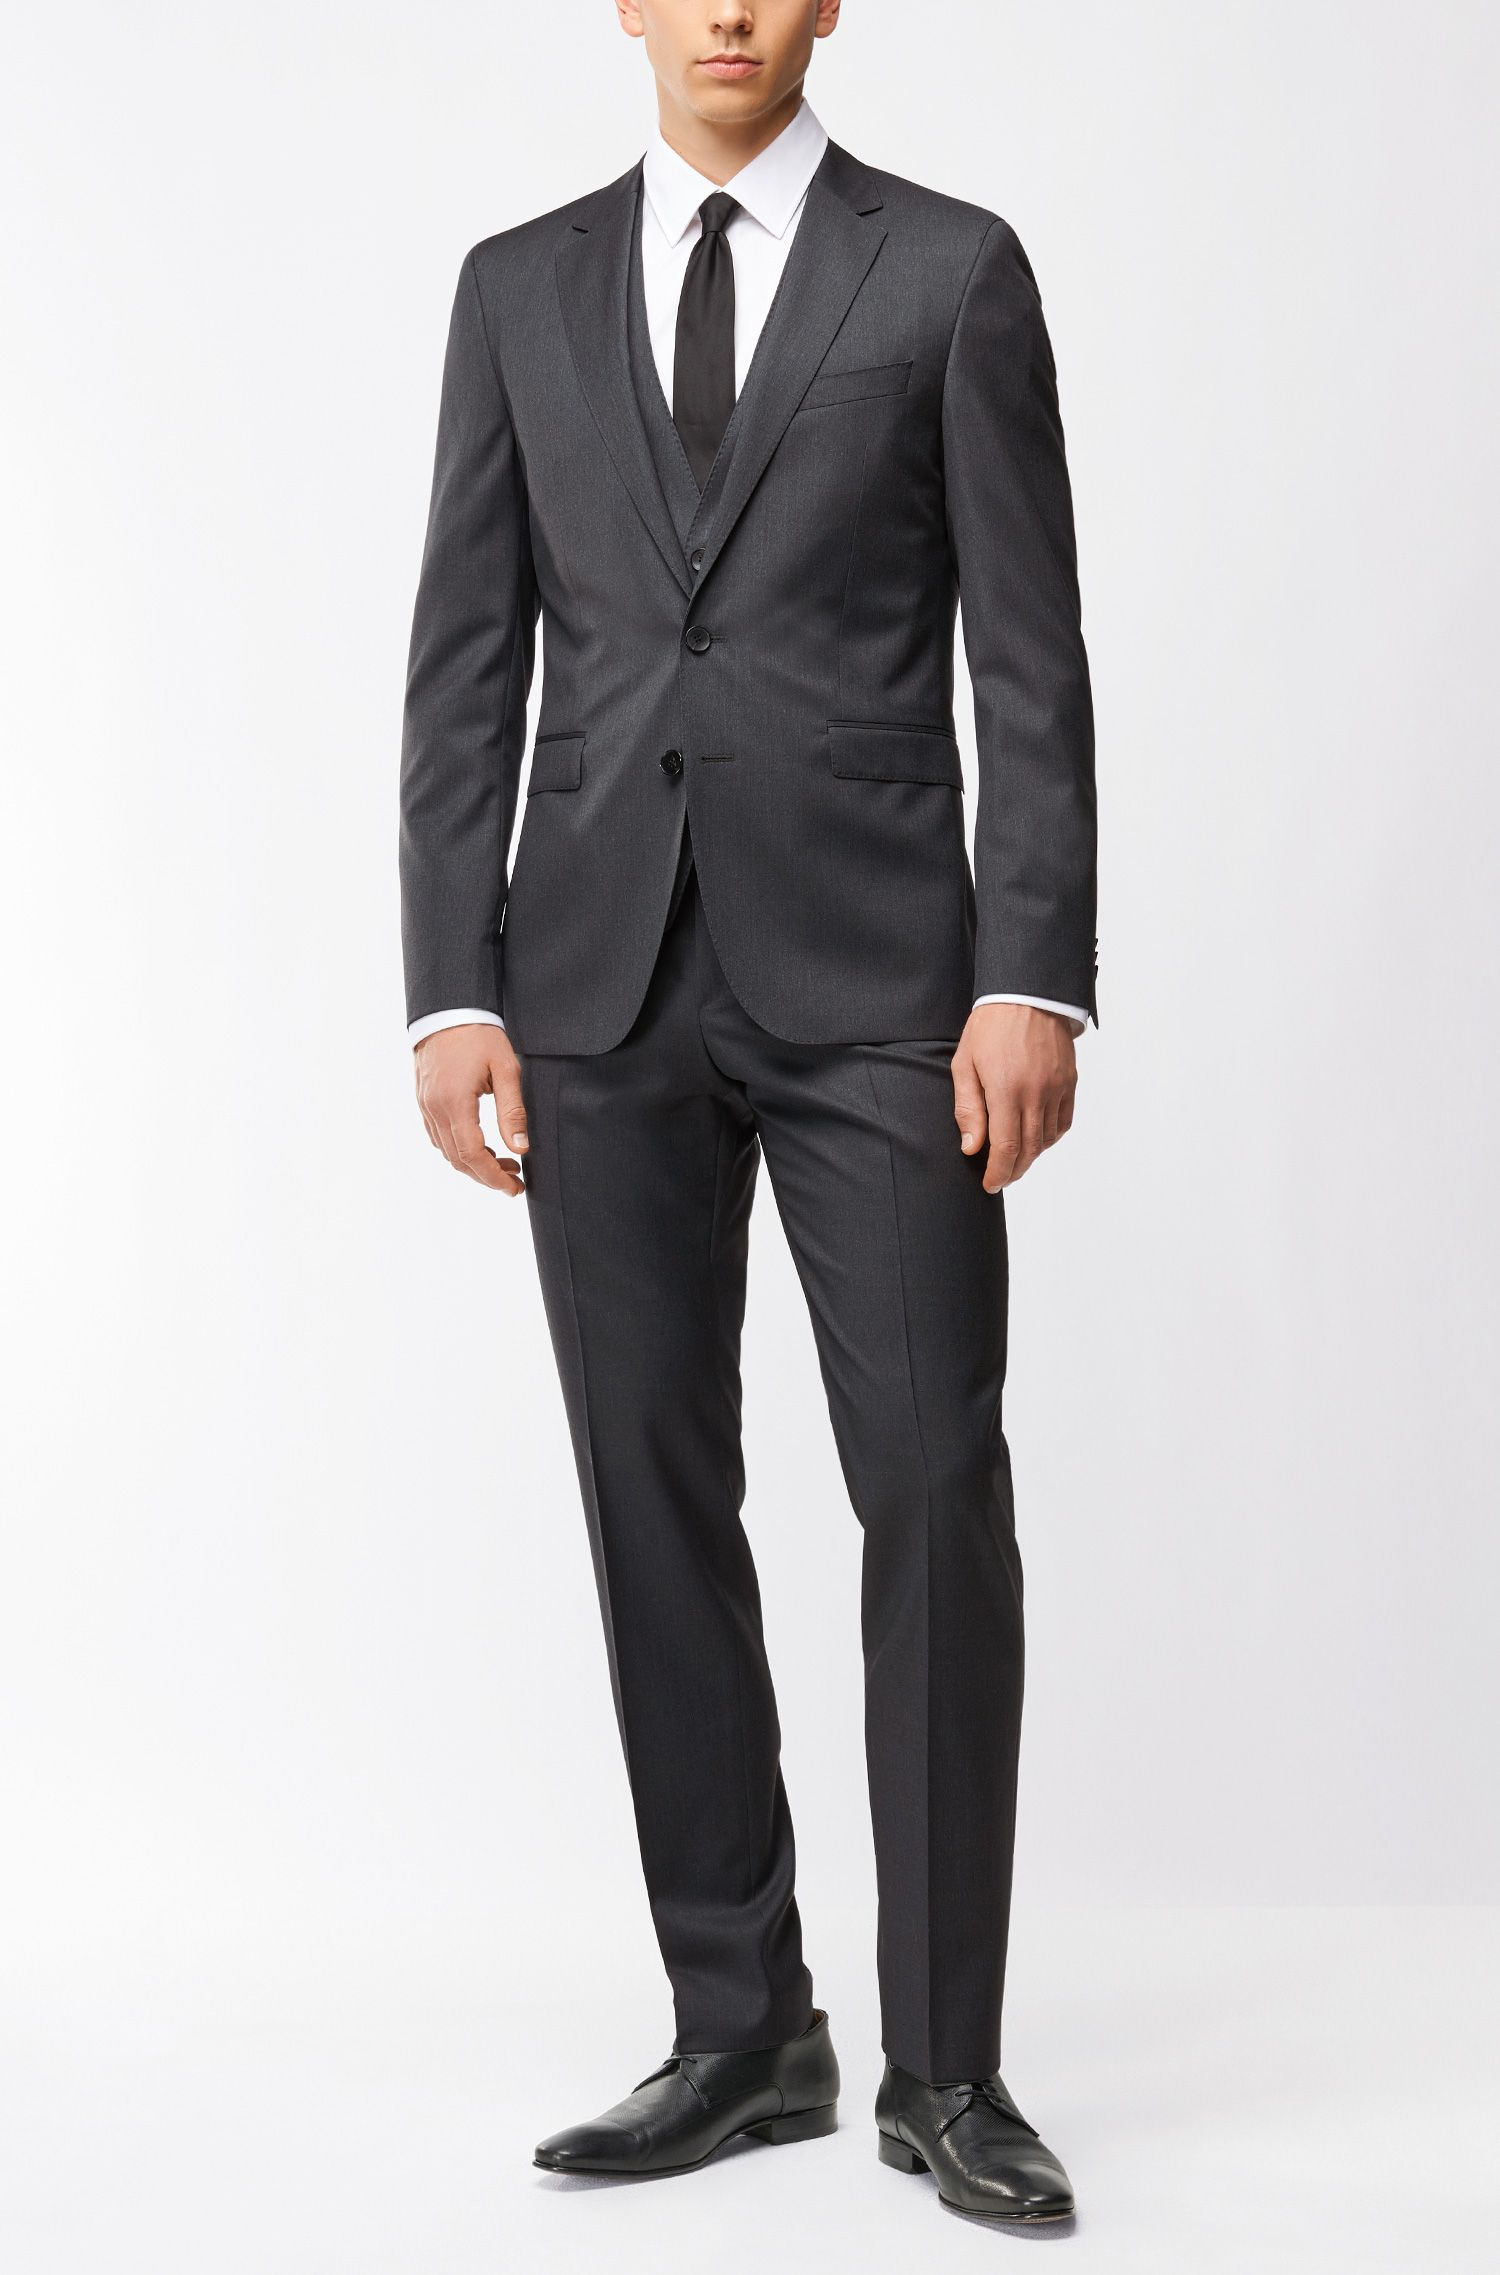 Giacca extra slim fit in pura lana